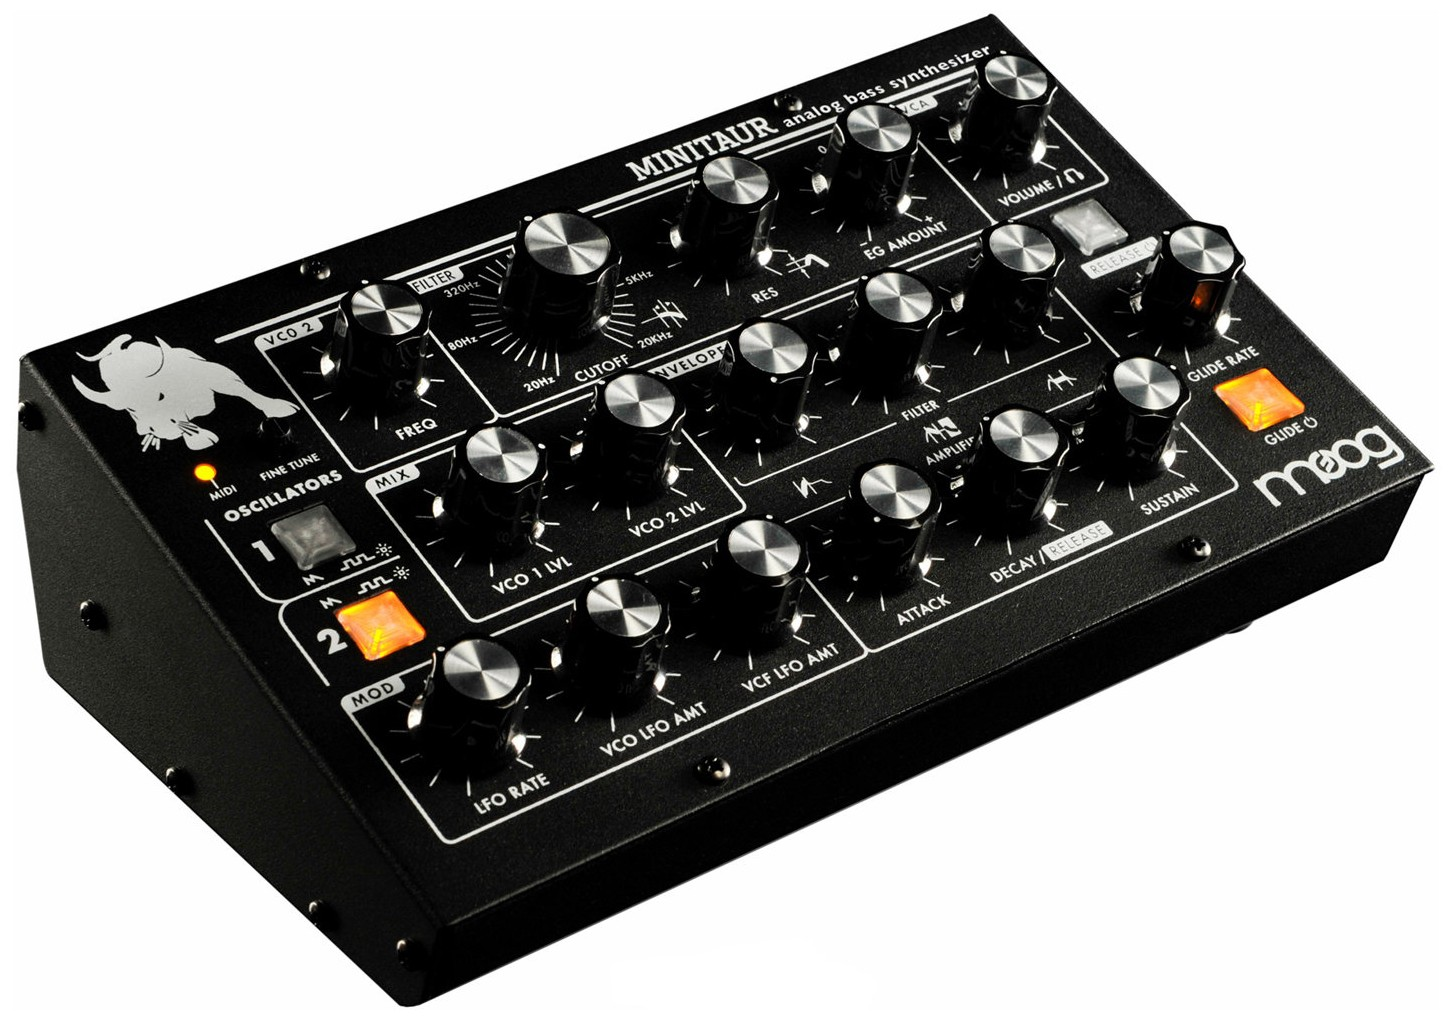 Best Hardware Synth For Sound Design